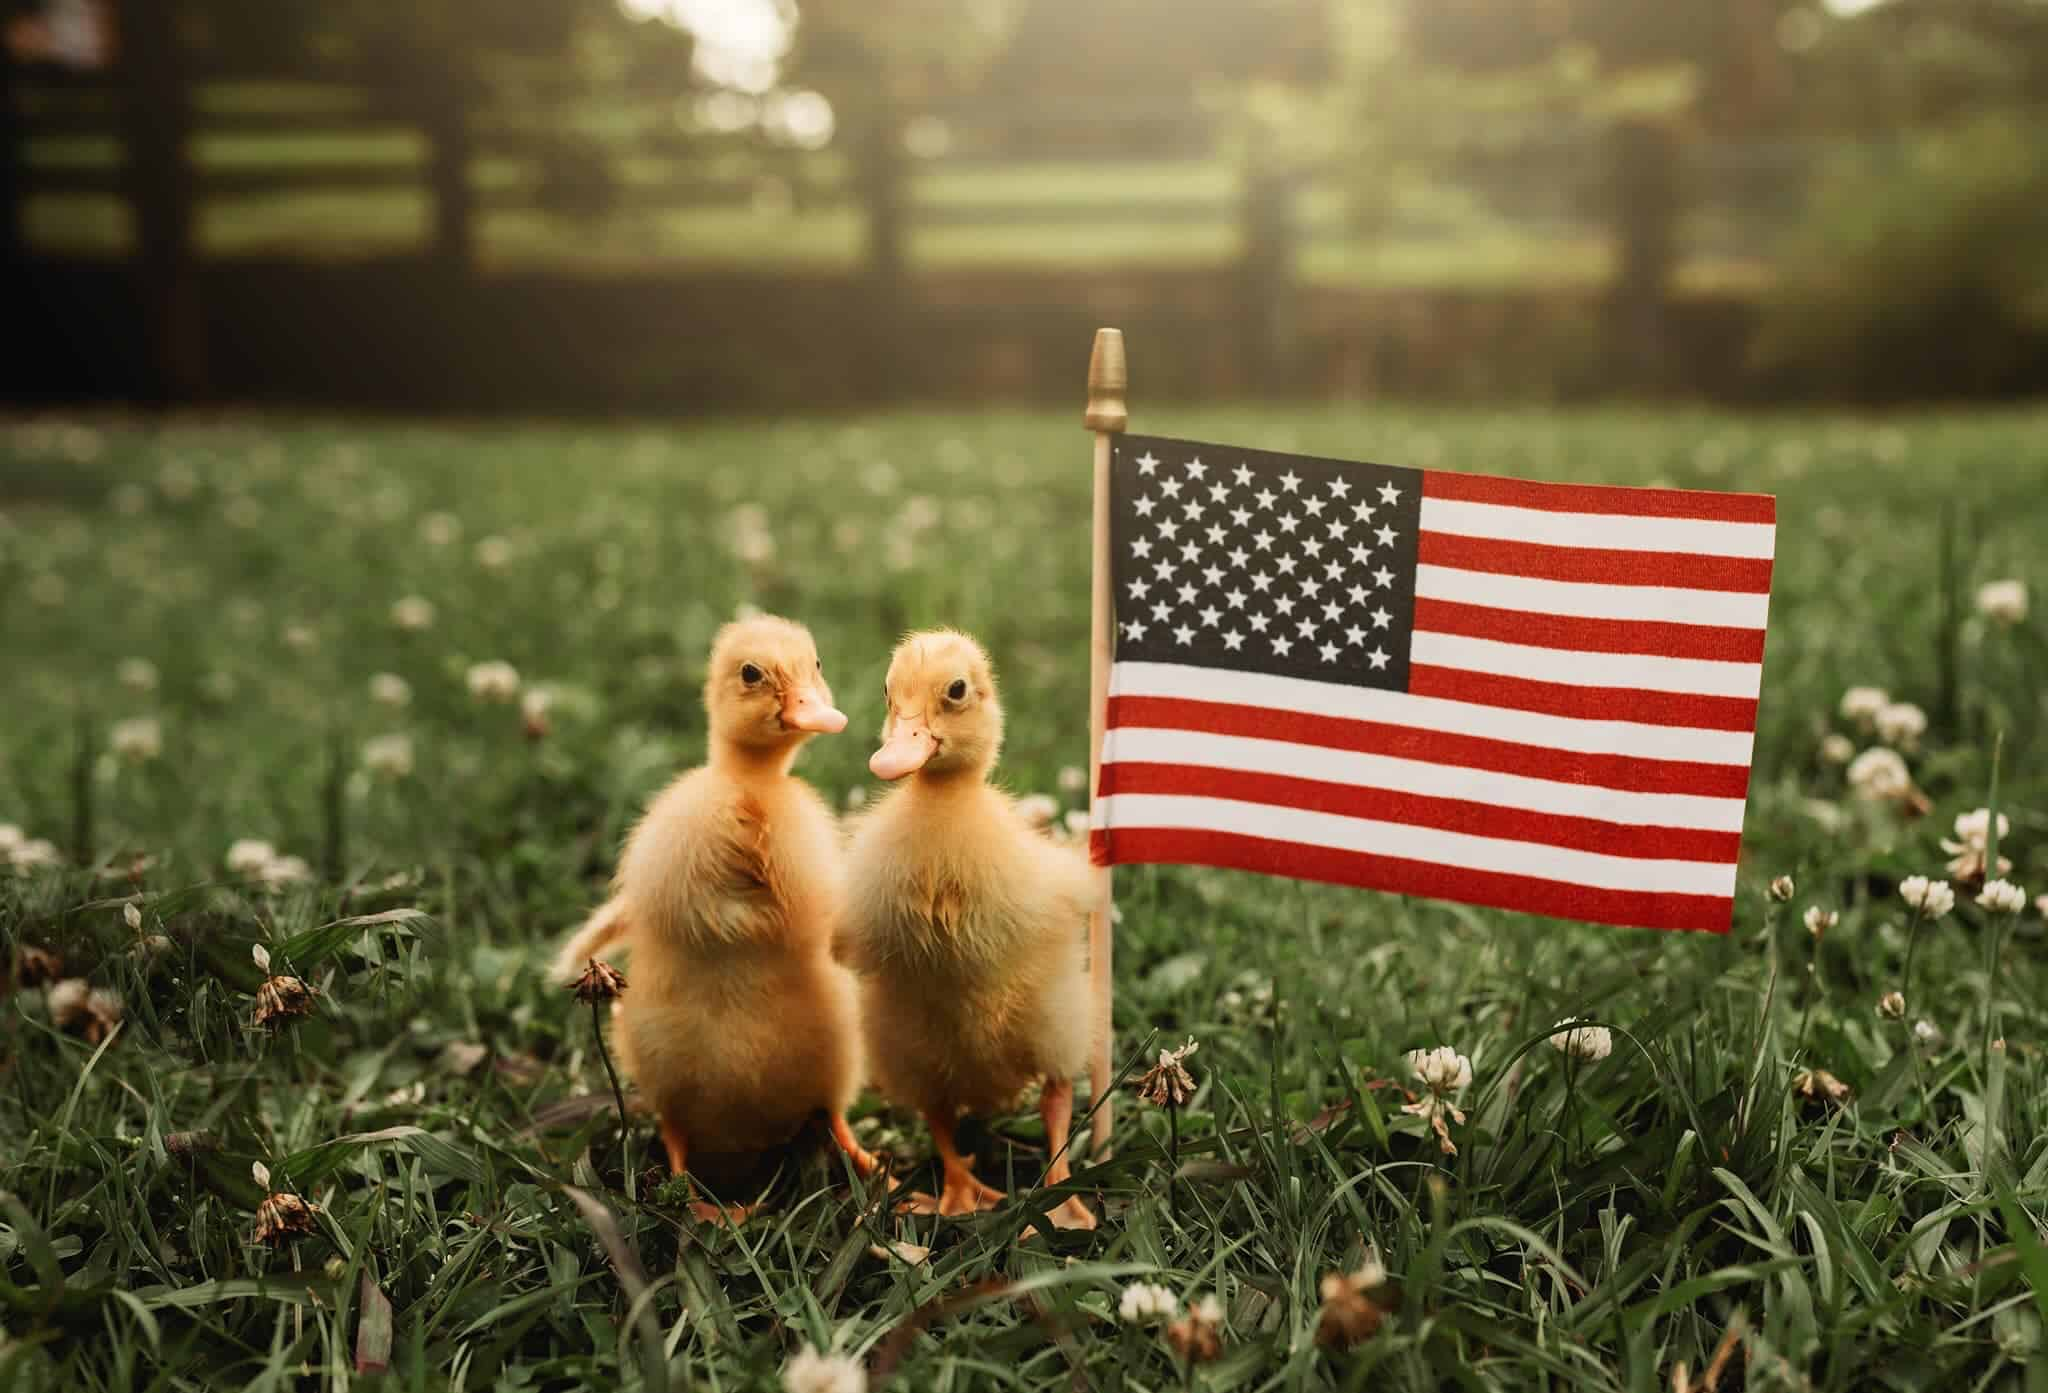 Two baby ducklings next to a tiny US flag